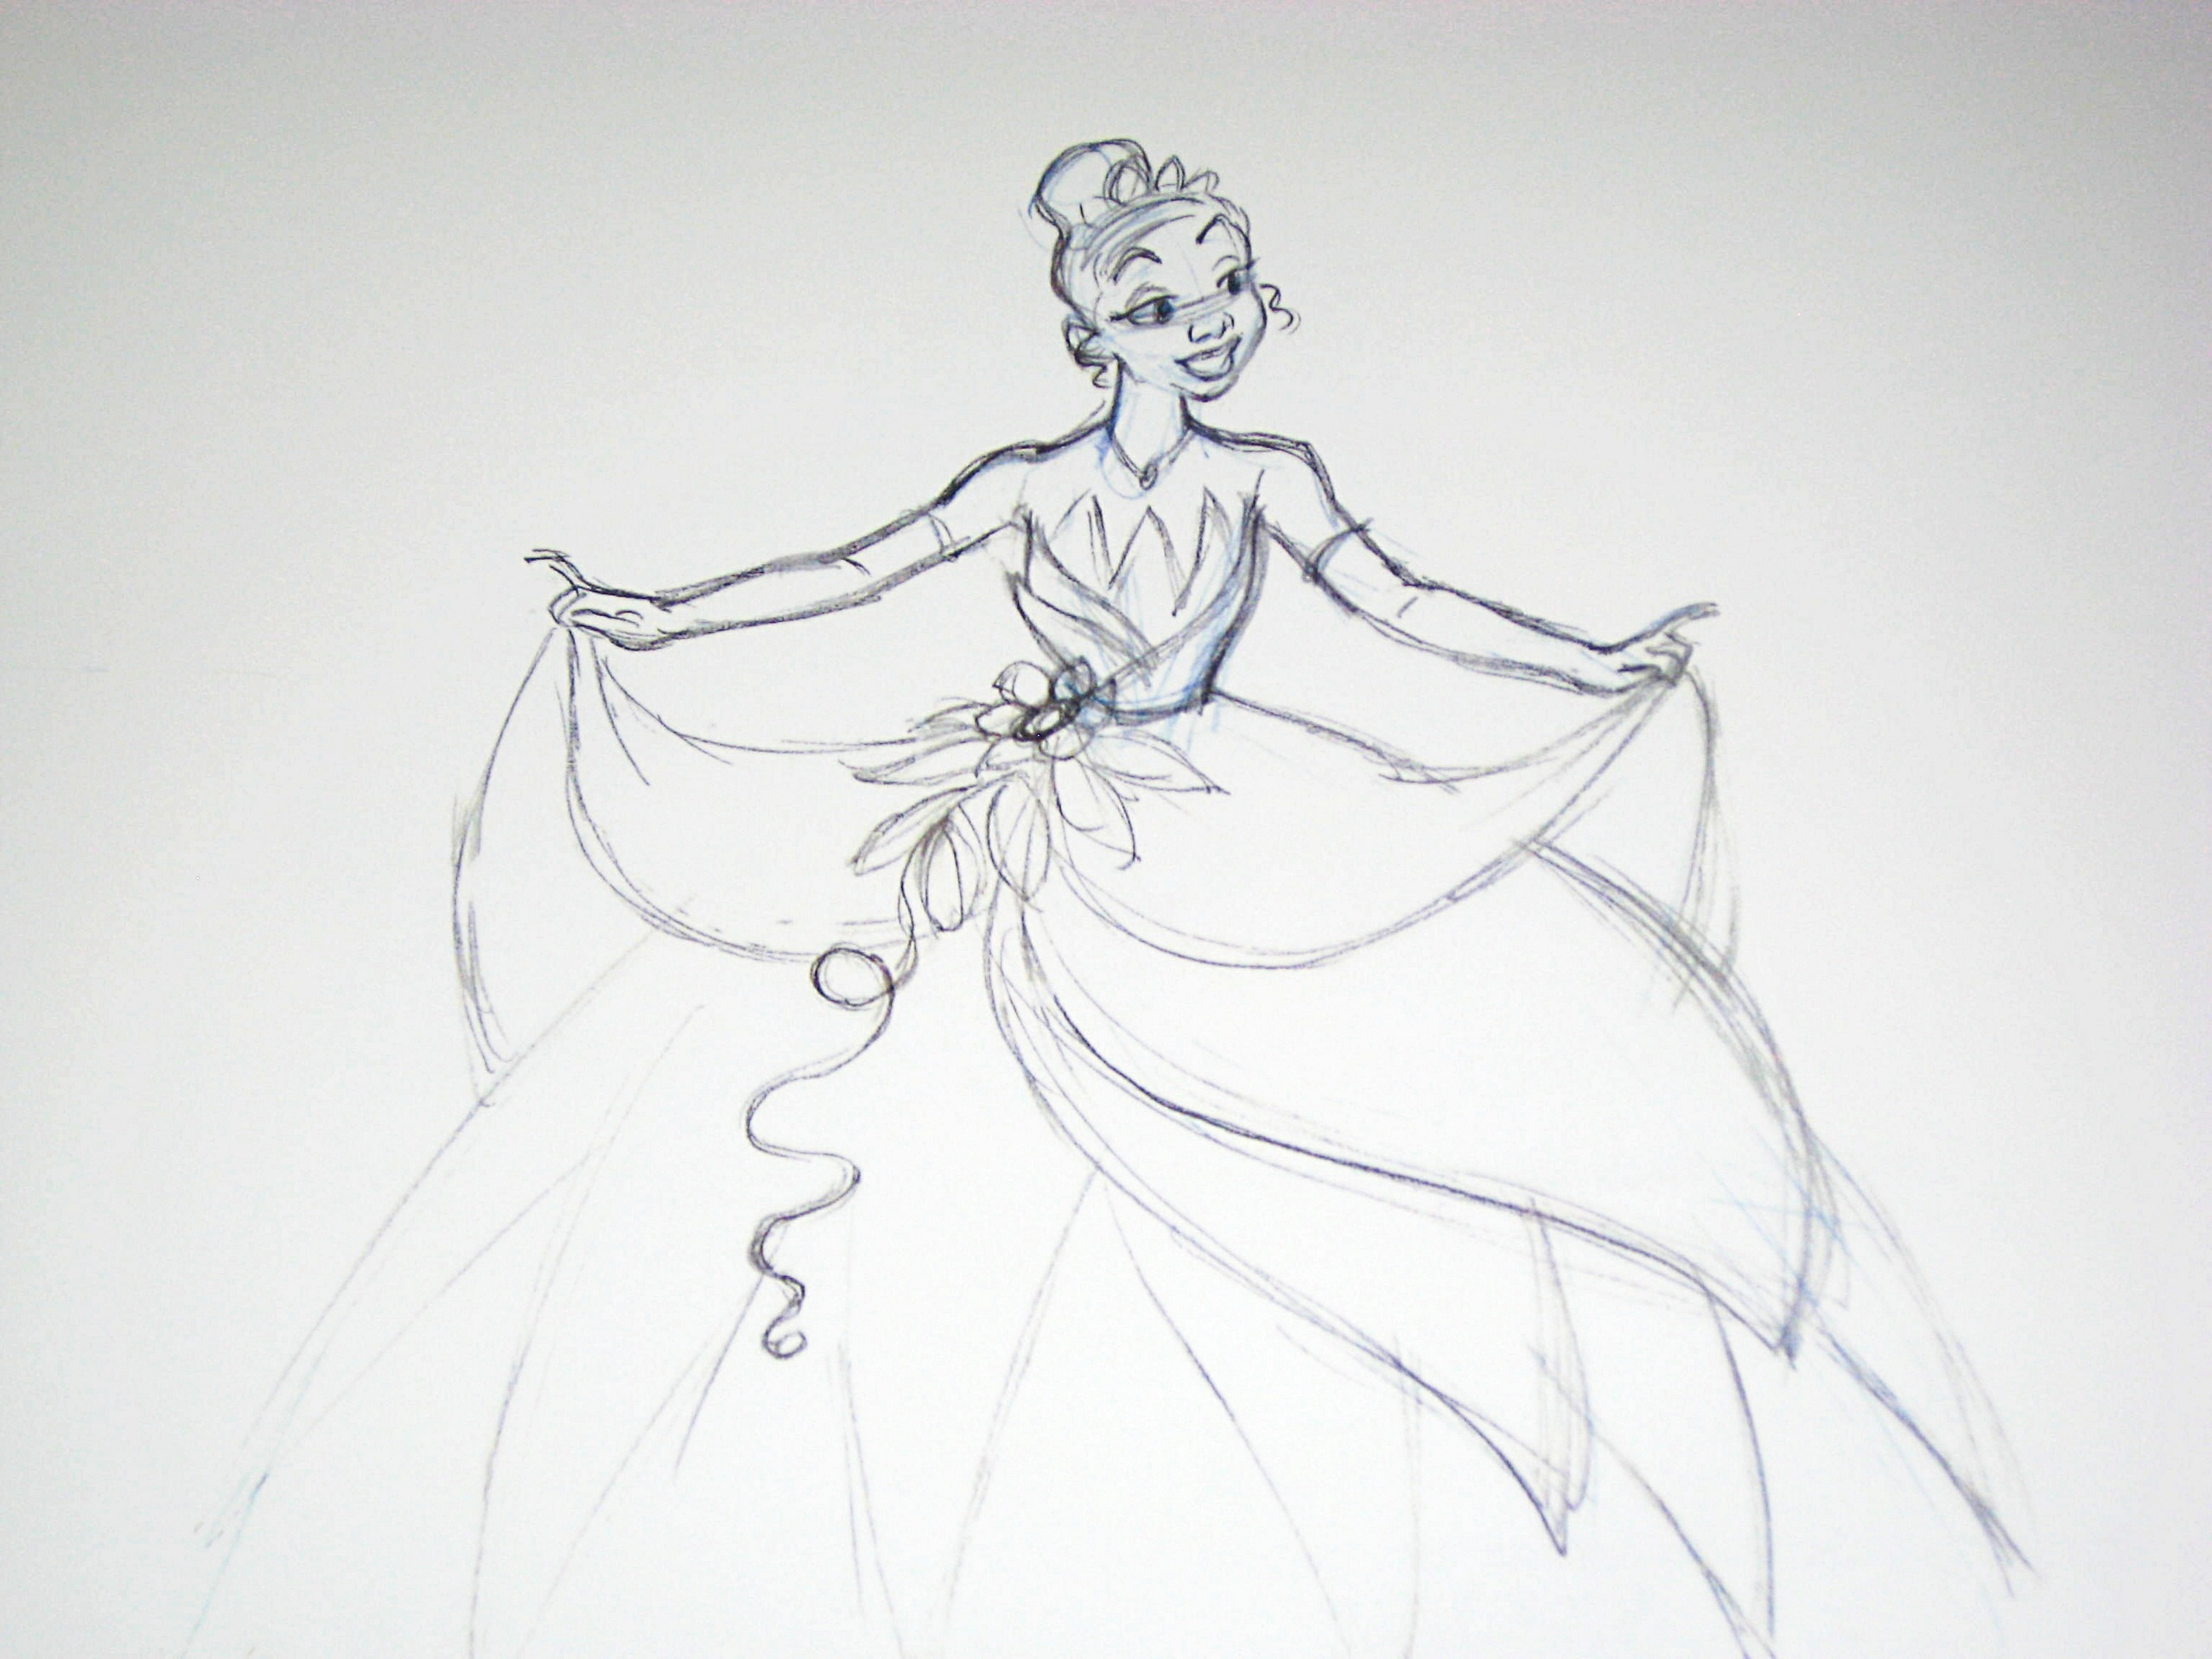 Disney sketches images tiana wedding sketch hd wallpaper and background photos